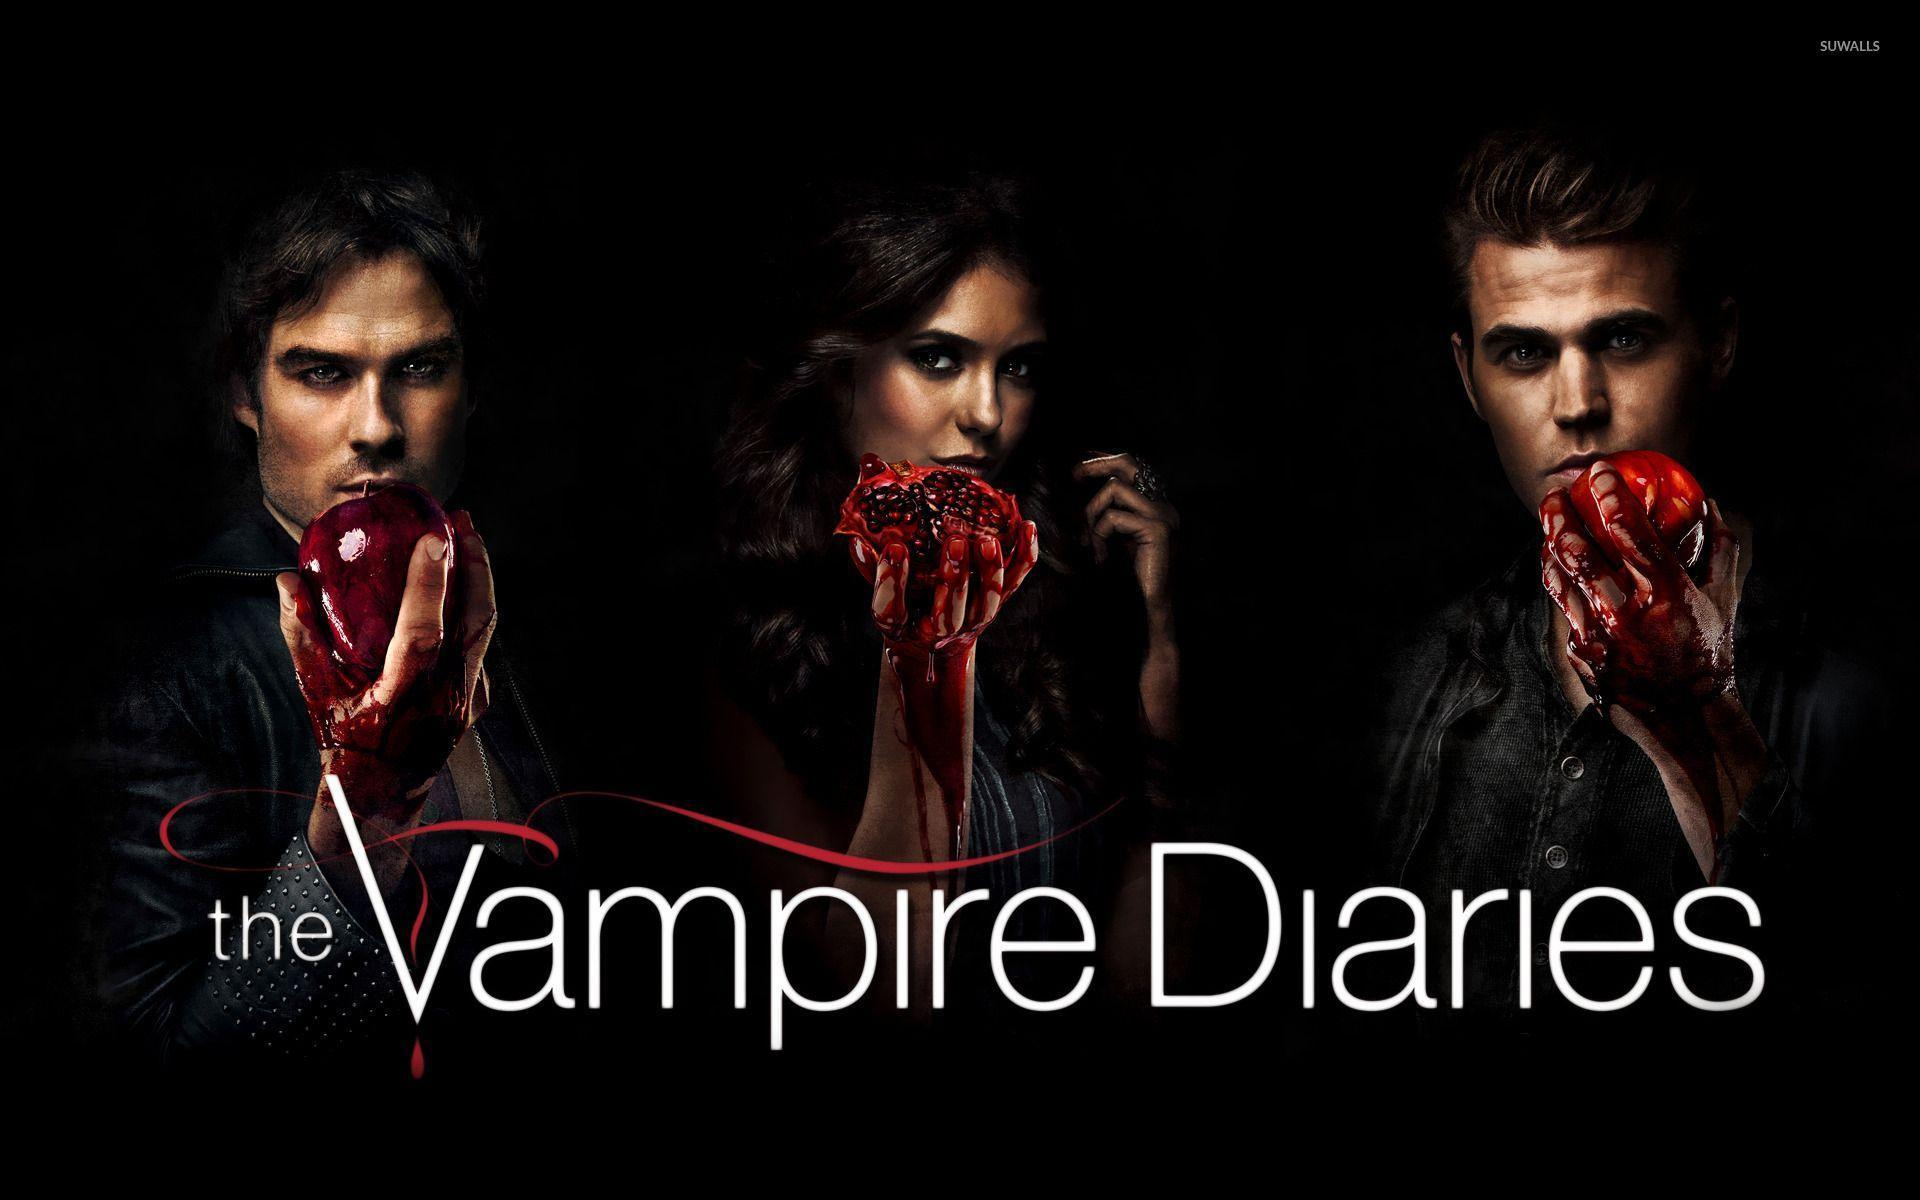 The Vampire Diaries [10] wallpaper - TV Show wallpapers - #14980